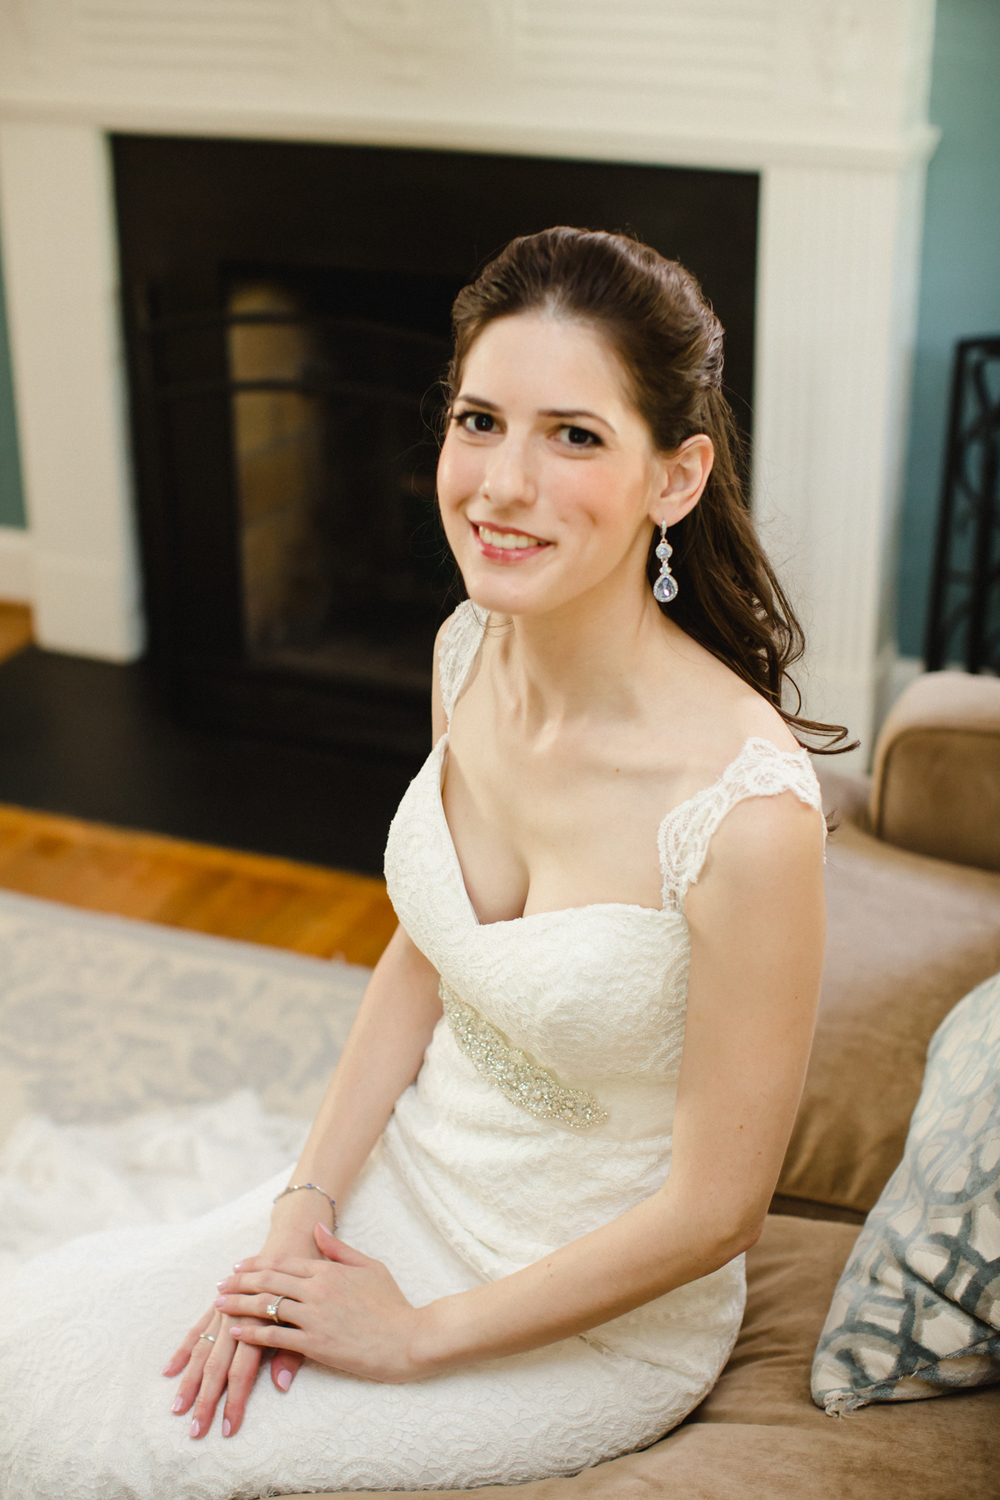 Vness-Photography_Washington-DC-Wedding-Photographer_Kennedy-Center-Wedding-207.JPG